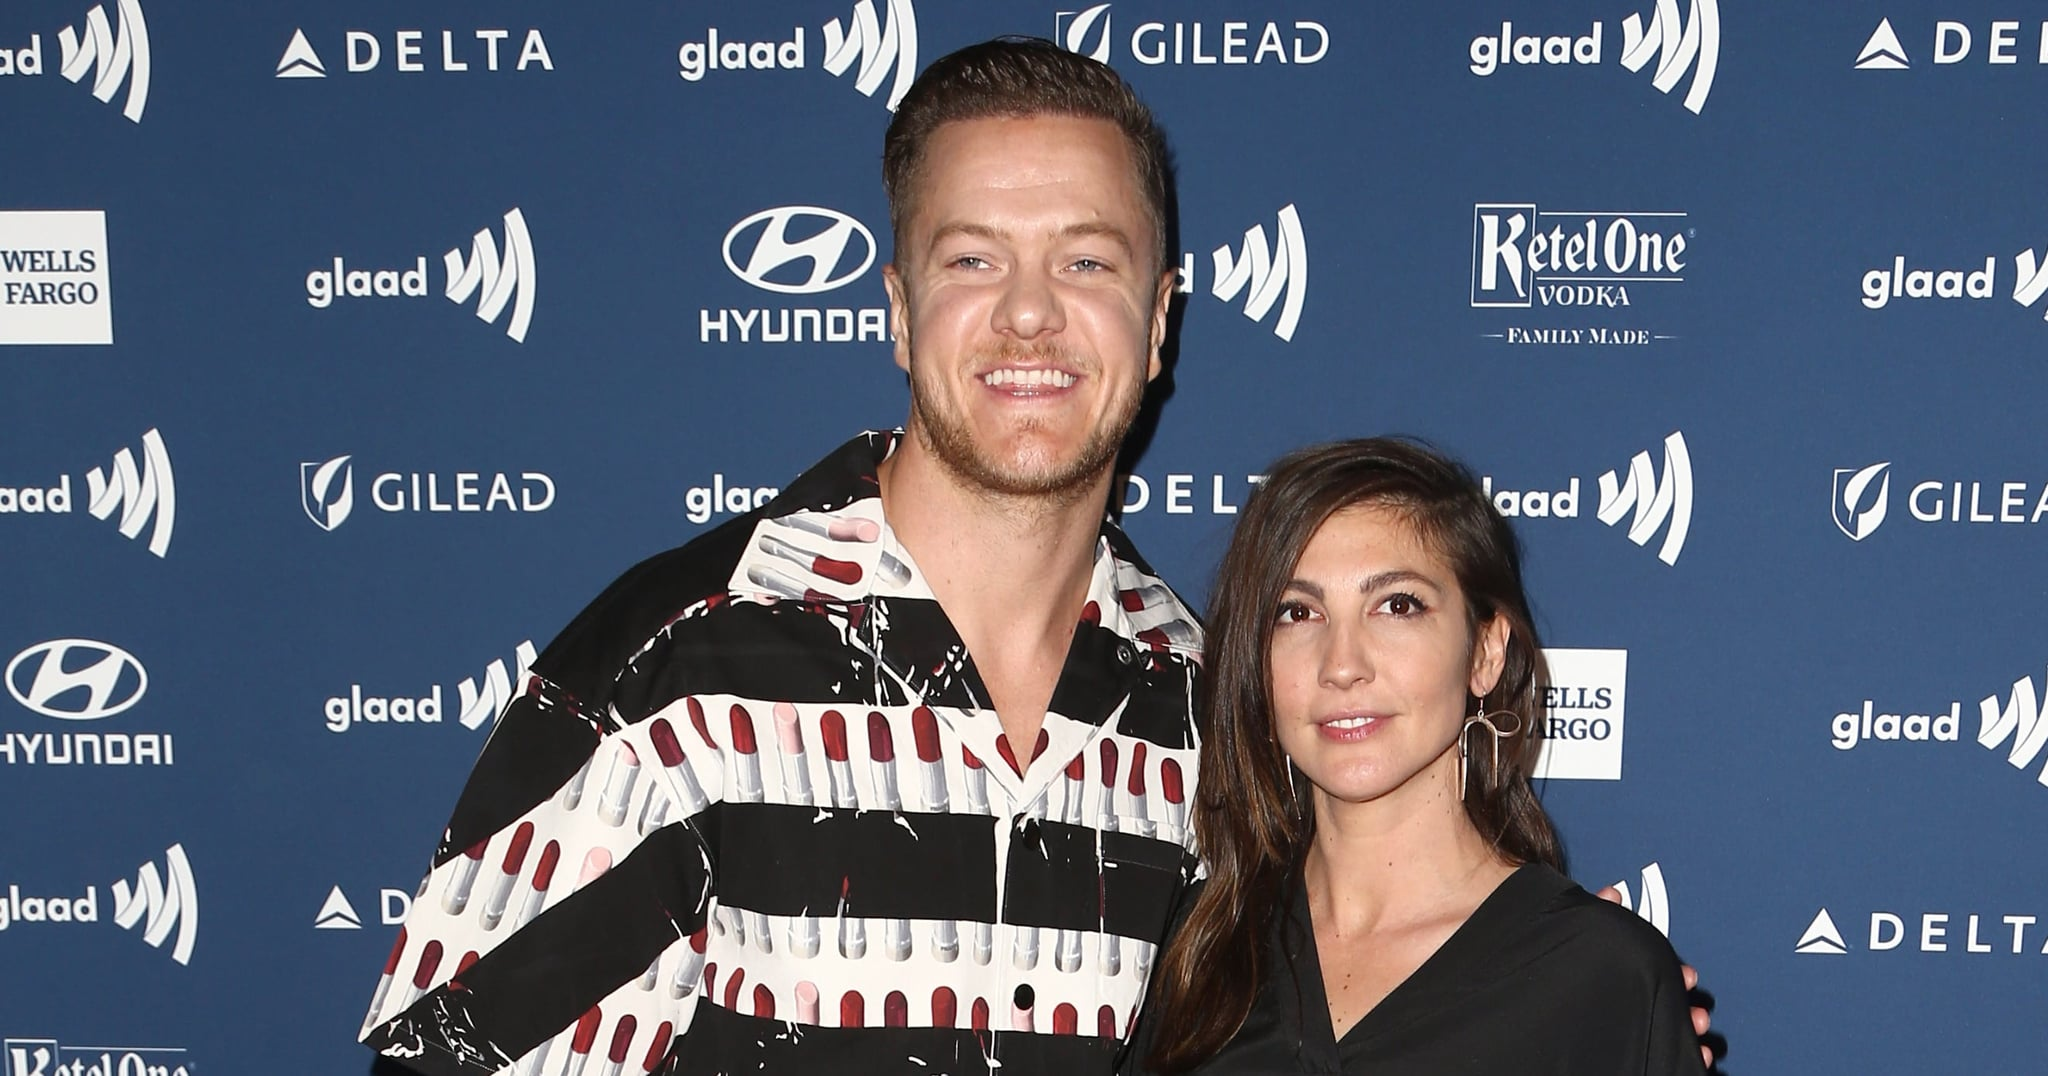 Imagine Dragons Singer Dan Reynolds and His Wife Are Expecting Their Fourth Child